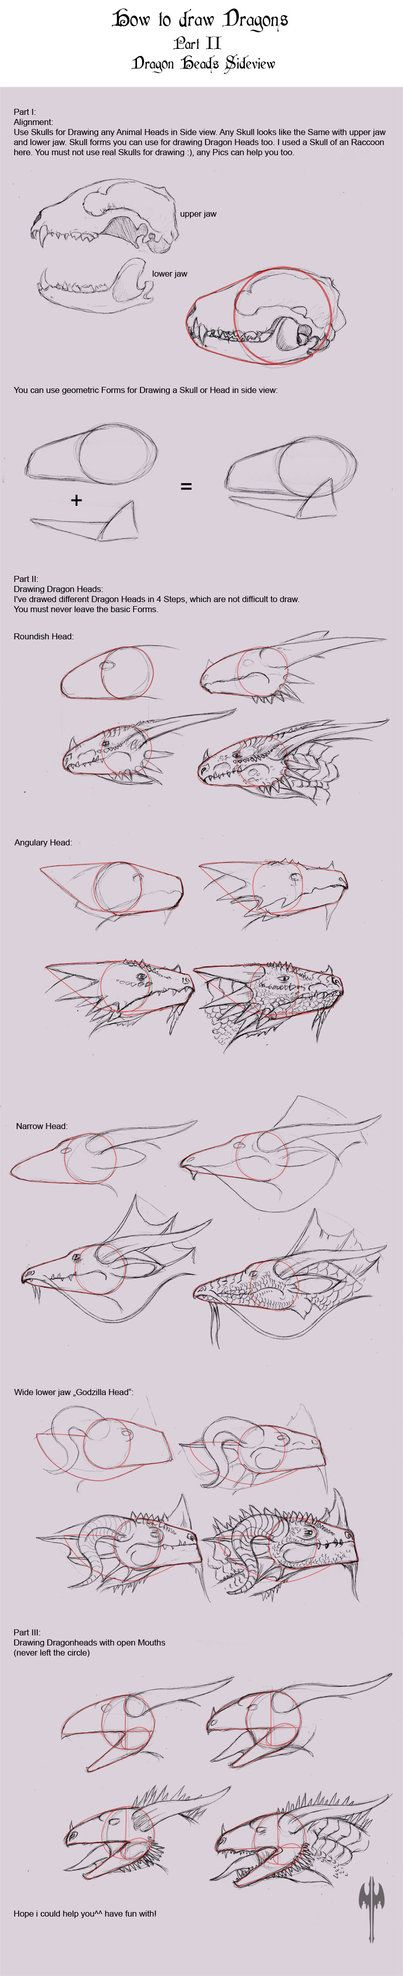 How to Draw Dragons II by ~Tarjcia on deviantART                                                                                                                                                                                 Más